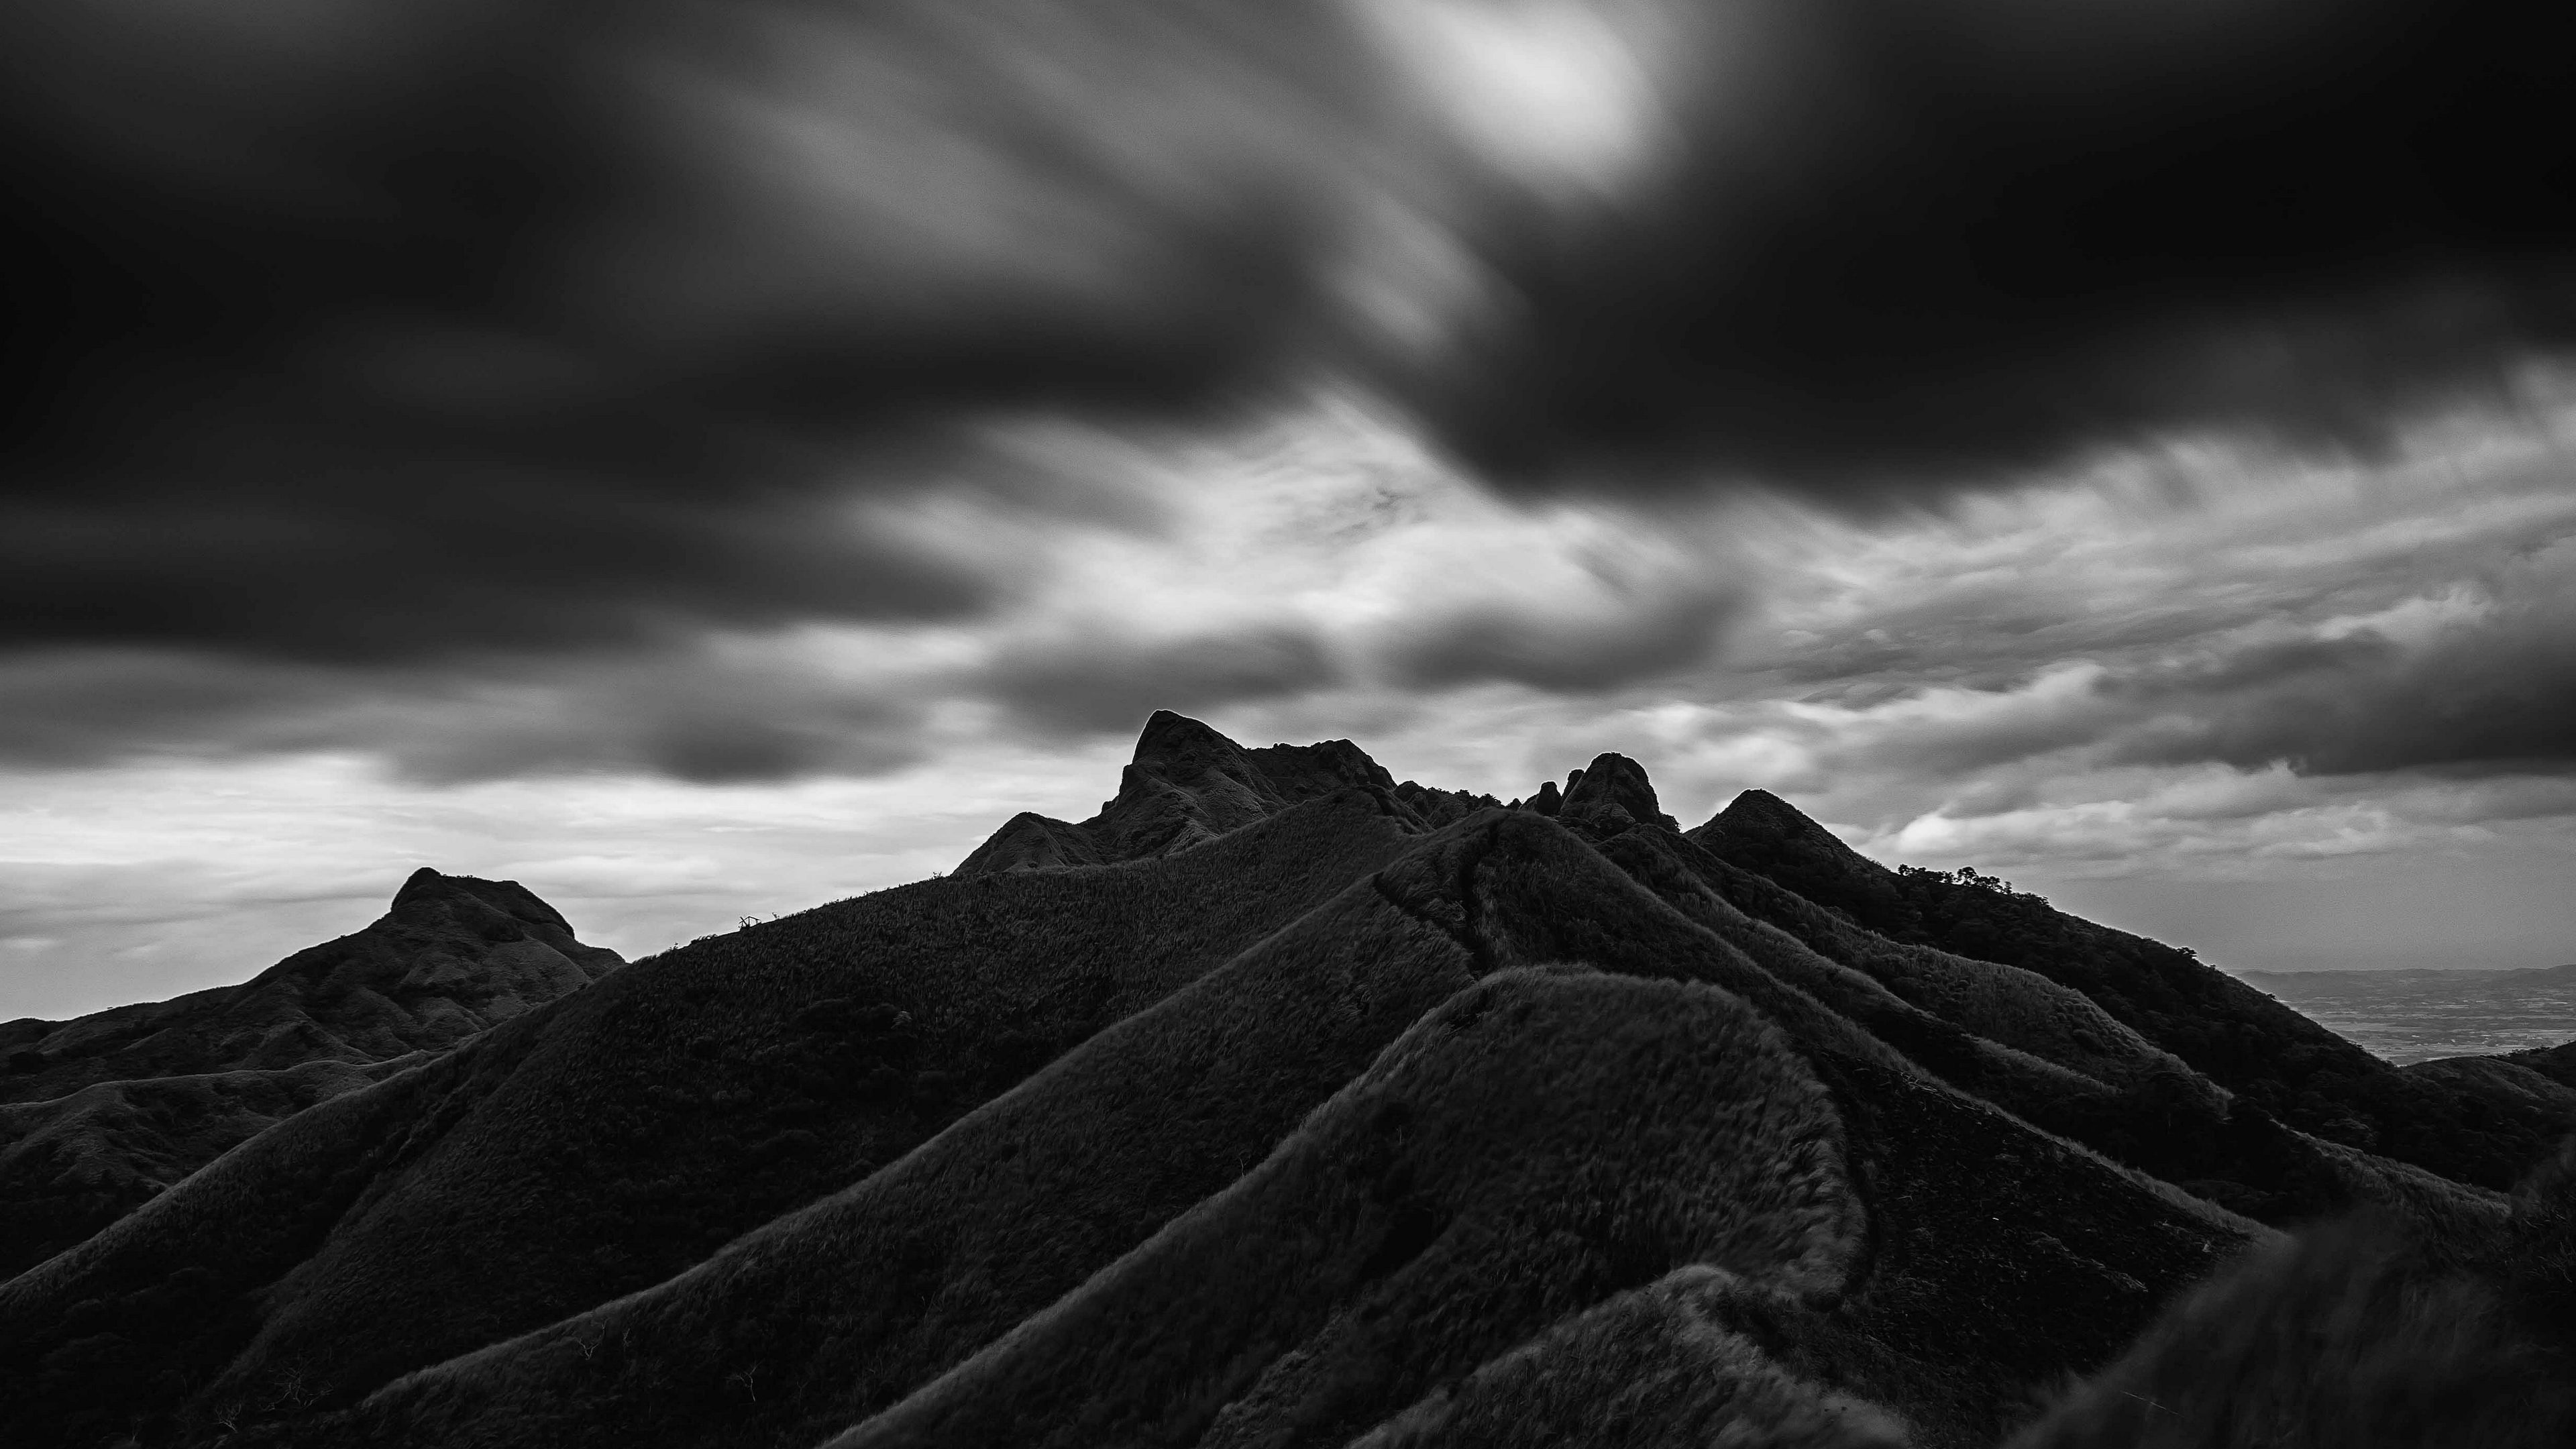 mountain hill bw black clouds batangas philippines 4k 1540575556 - mountain, hill, bw, black, clouds, batangas, philippines 4k - Mountain, hill, bw